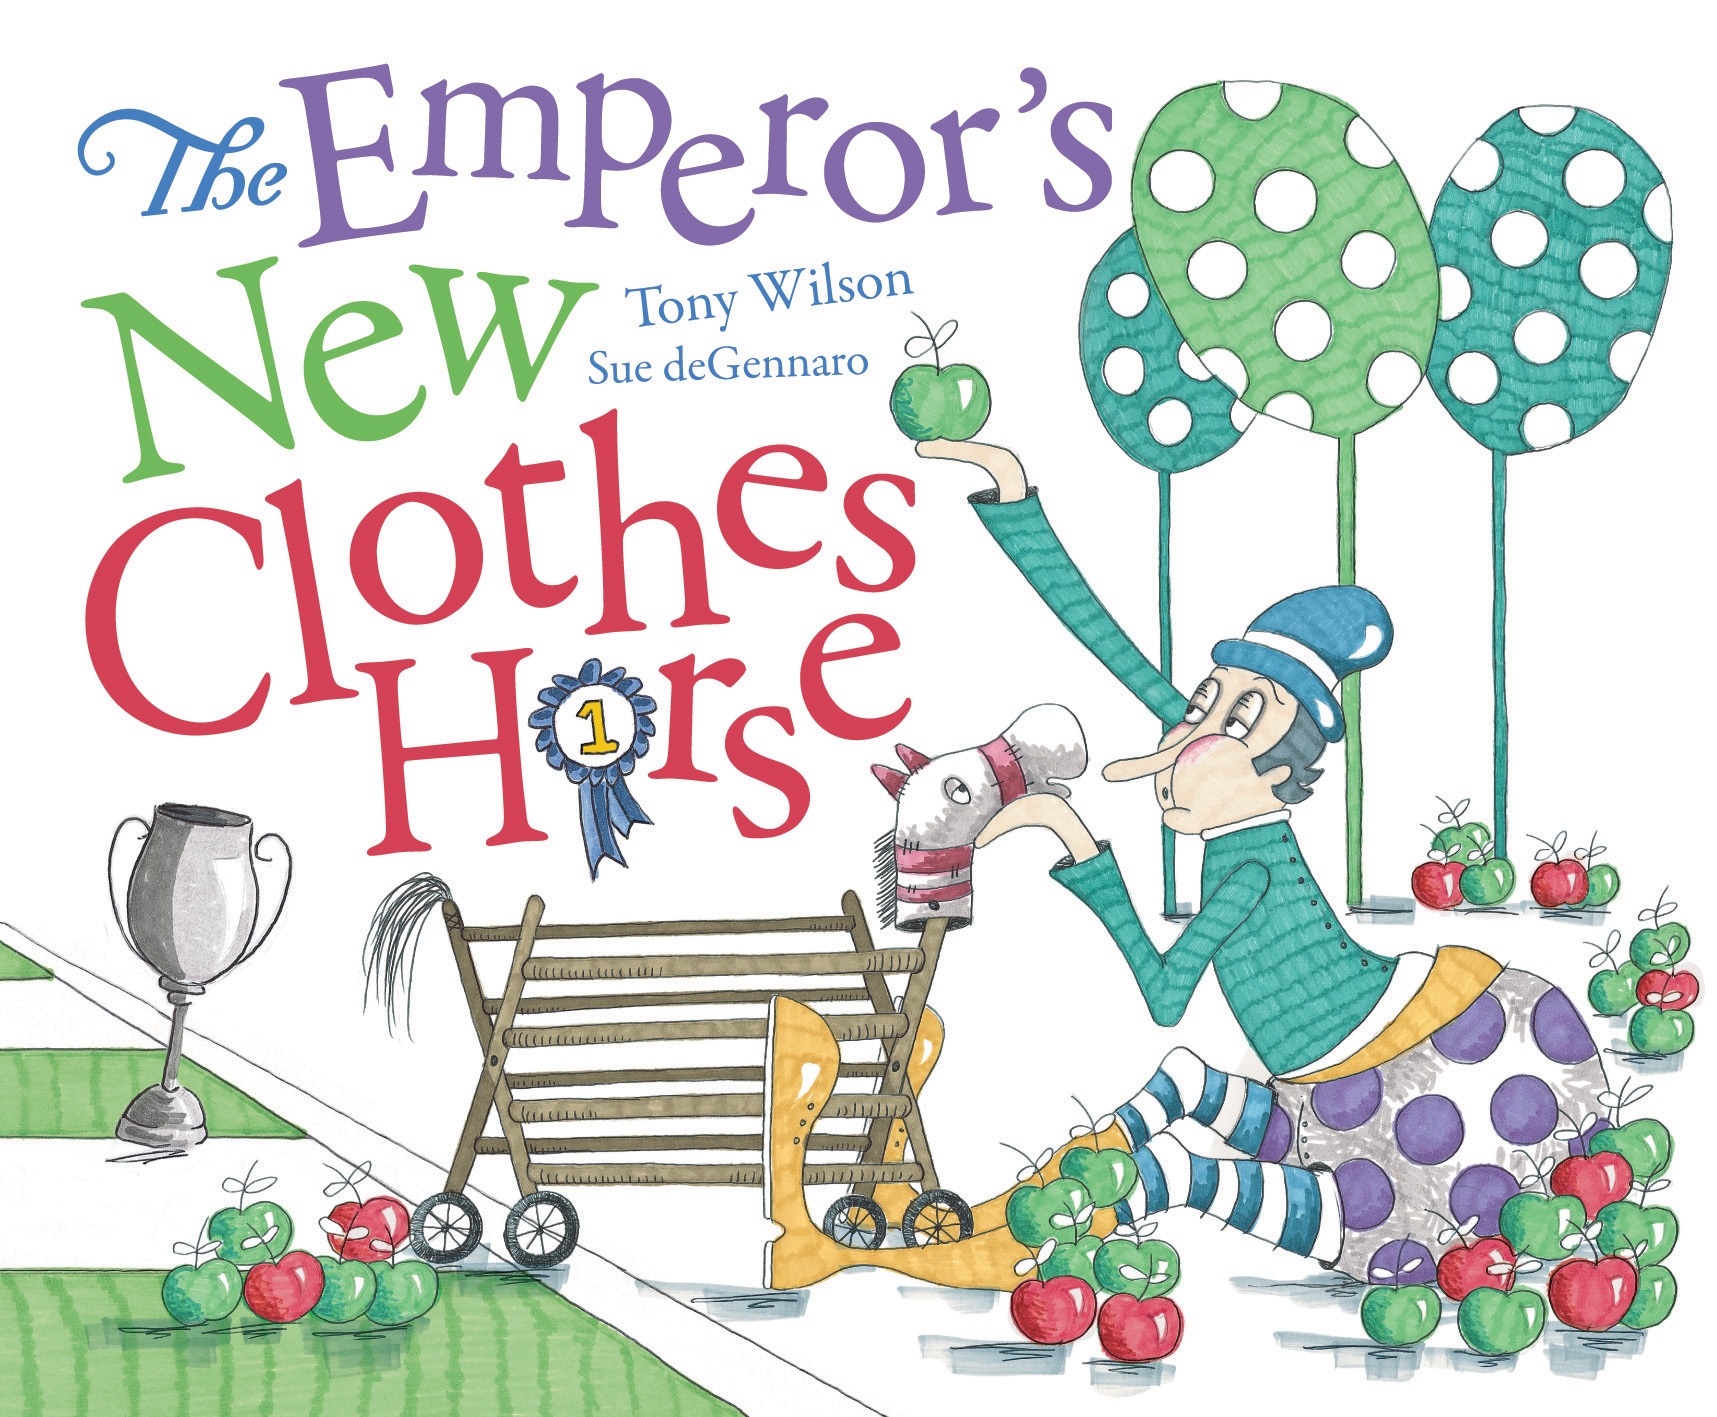 The Emperor's New Clothes Horse - Tony Wilson Sue deGennaro Scholastic